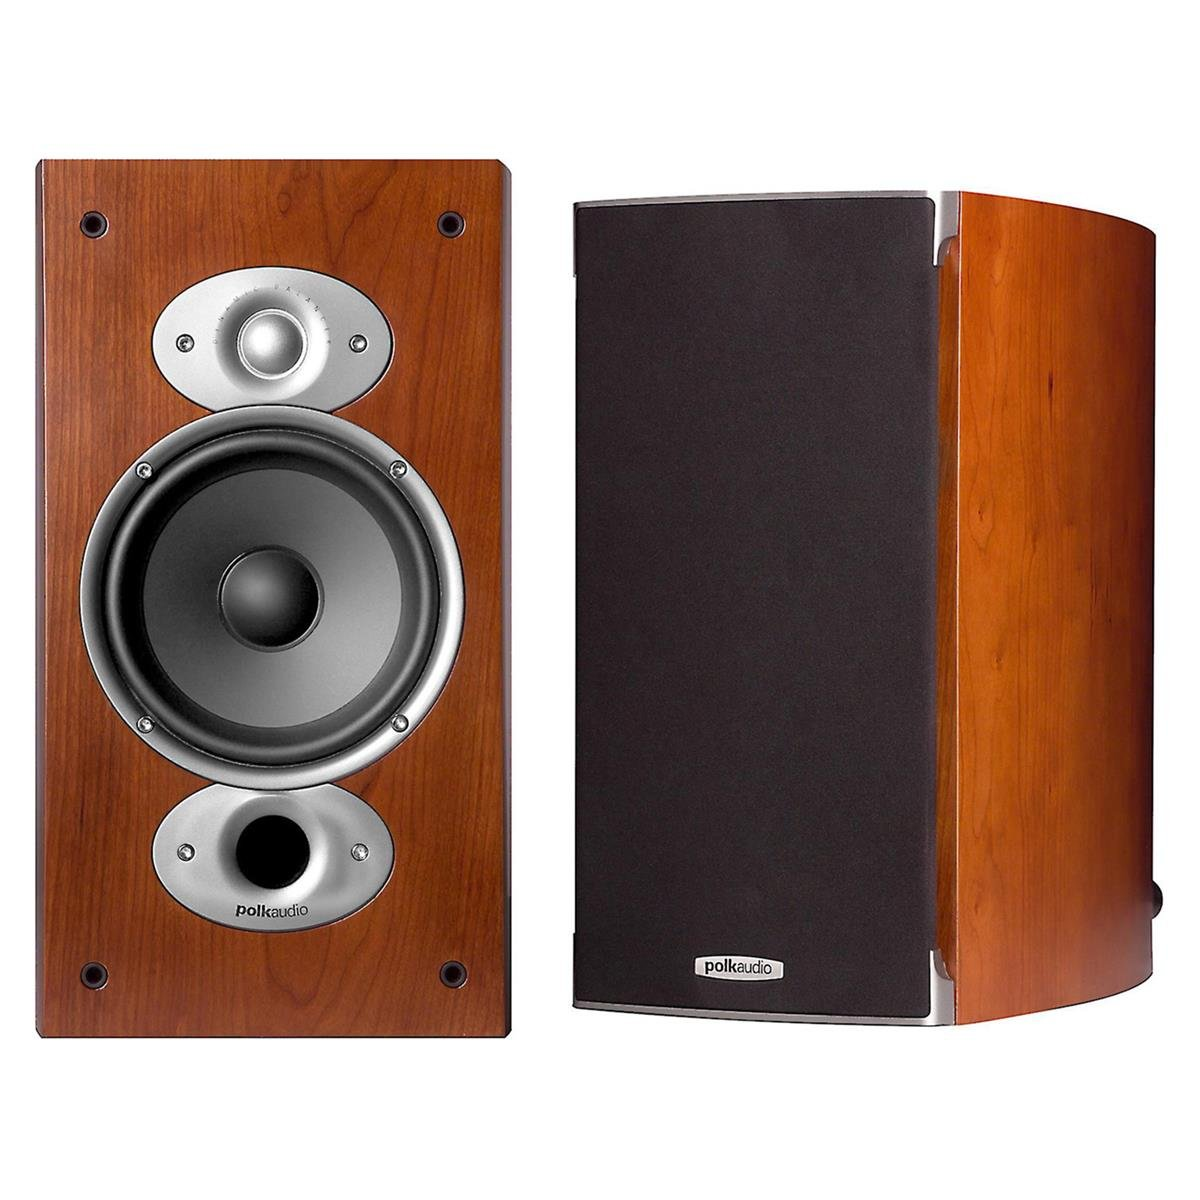 Polk Audio Rti A3 Cherry Rti A3 6.5'' Cherry High Performance Bookshelf Loudspeakers Am3372-a